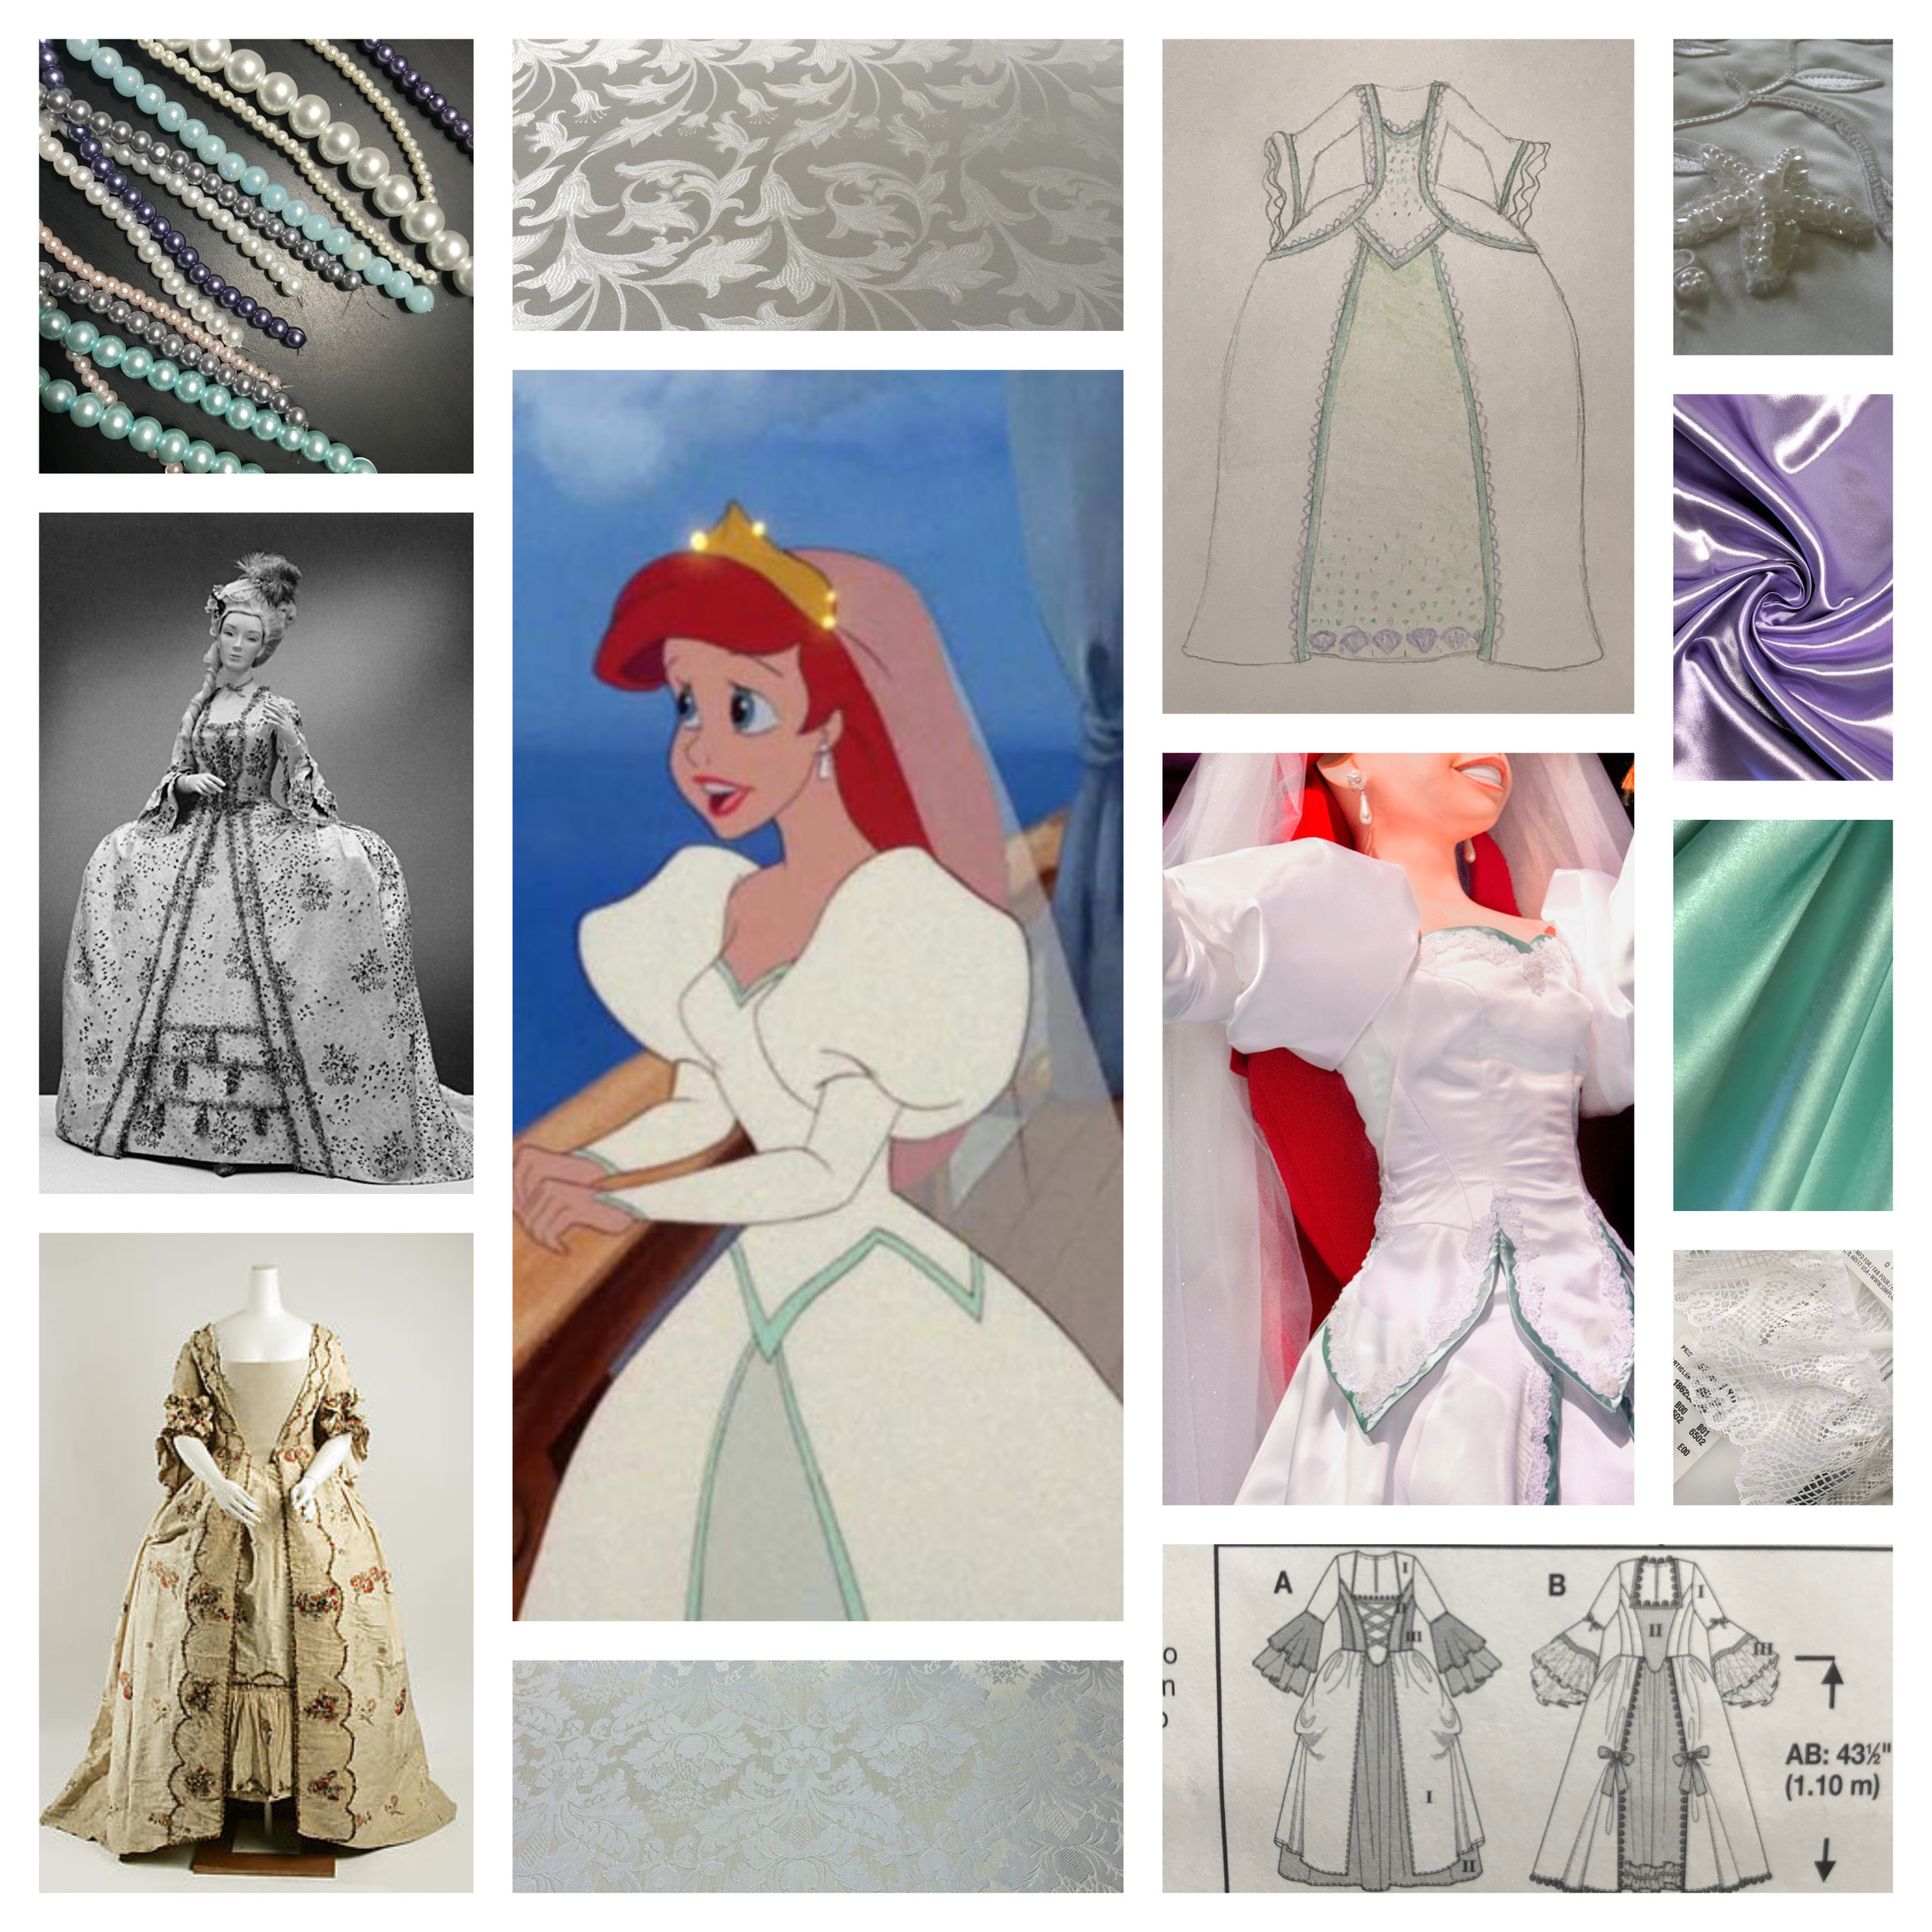 Fabric is here, patterns have been cut out, and mannequins are ready to be draped.  We are making slow but steady progress now on our Rococo Disney princesses.  Holy horseradish, these gowns are going to be soooo heavy!